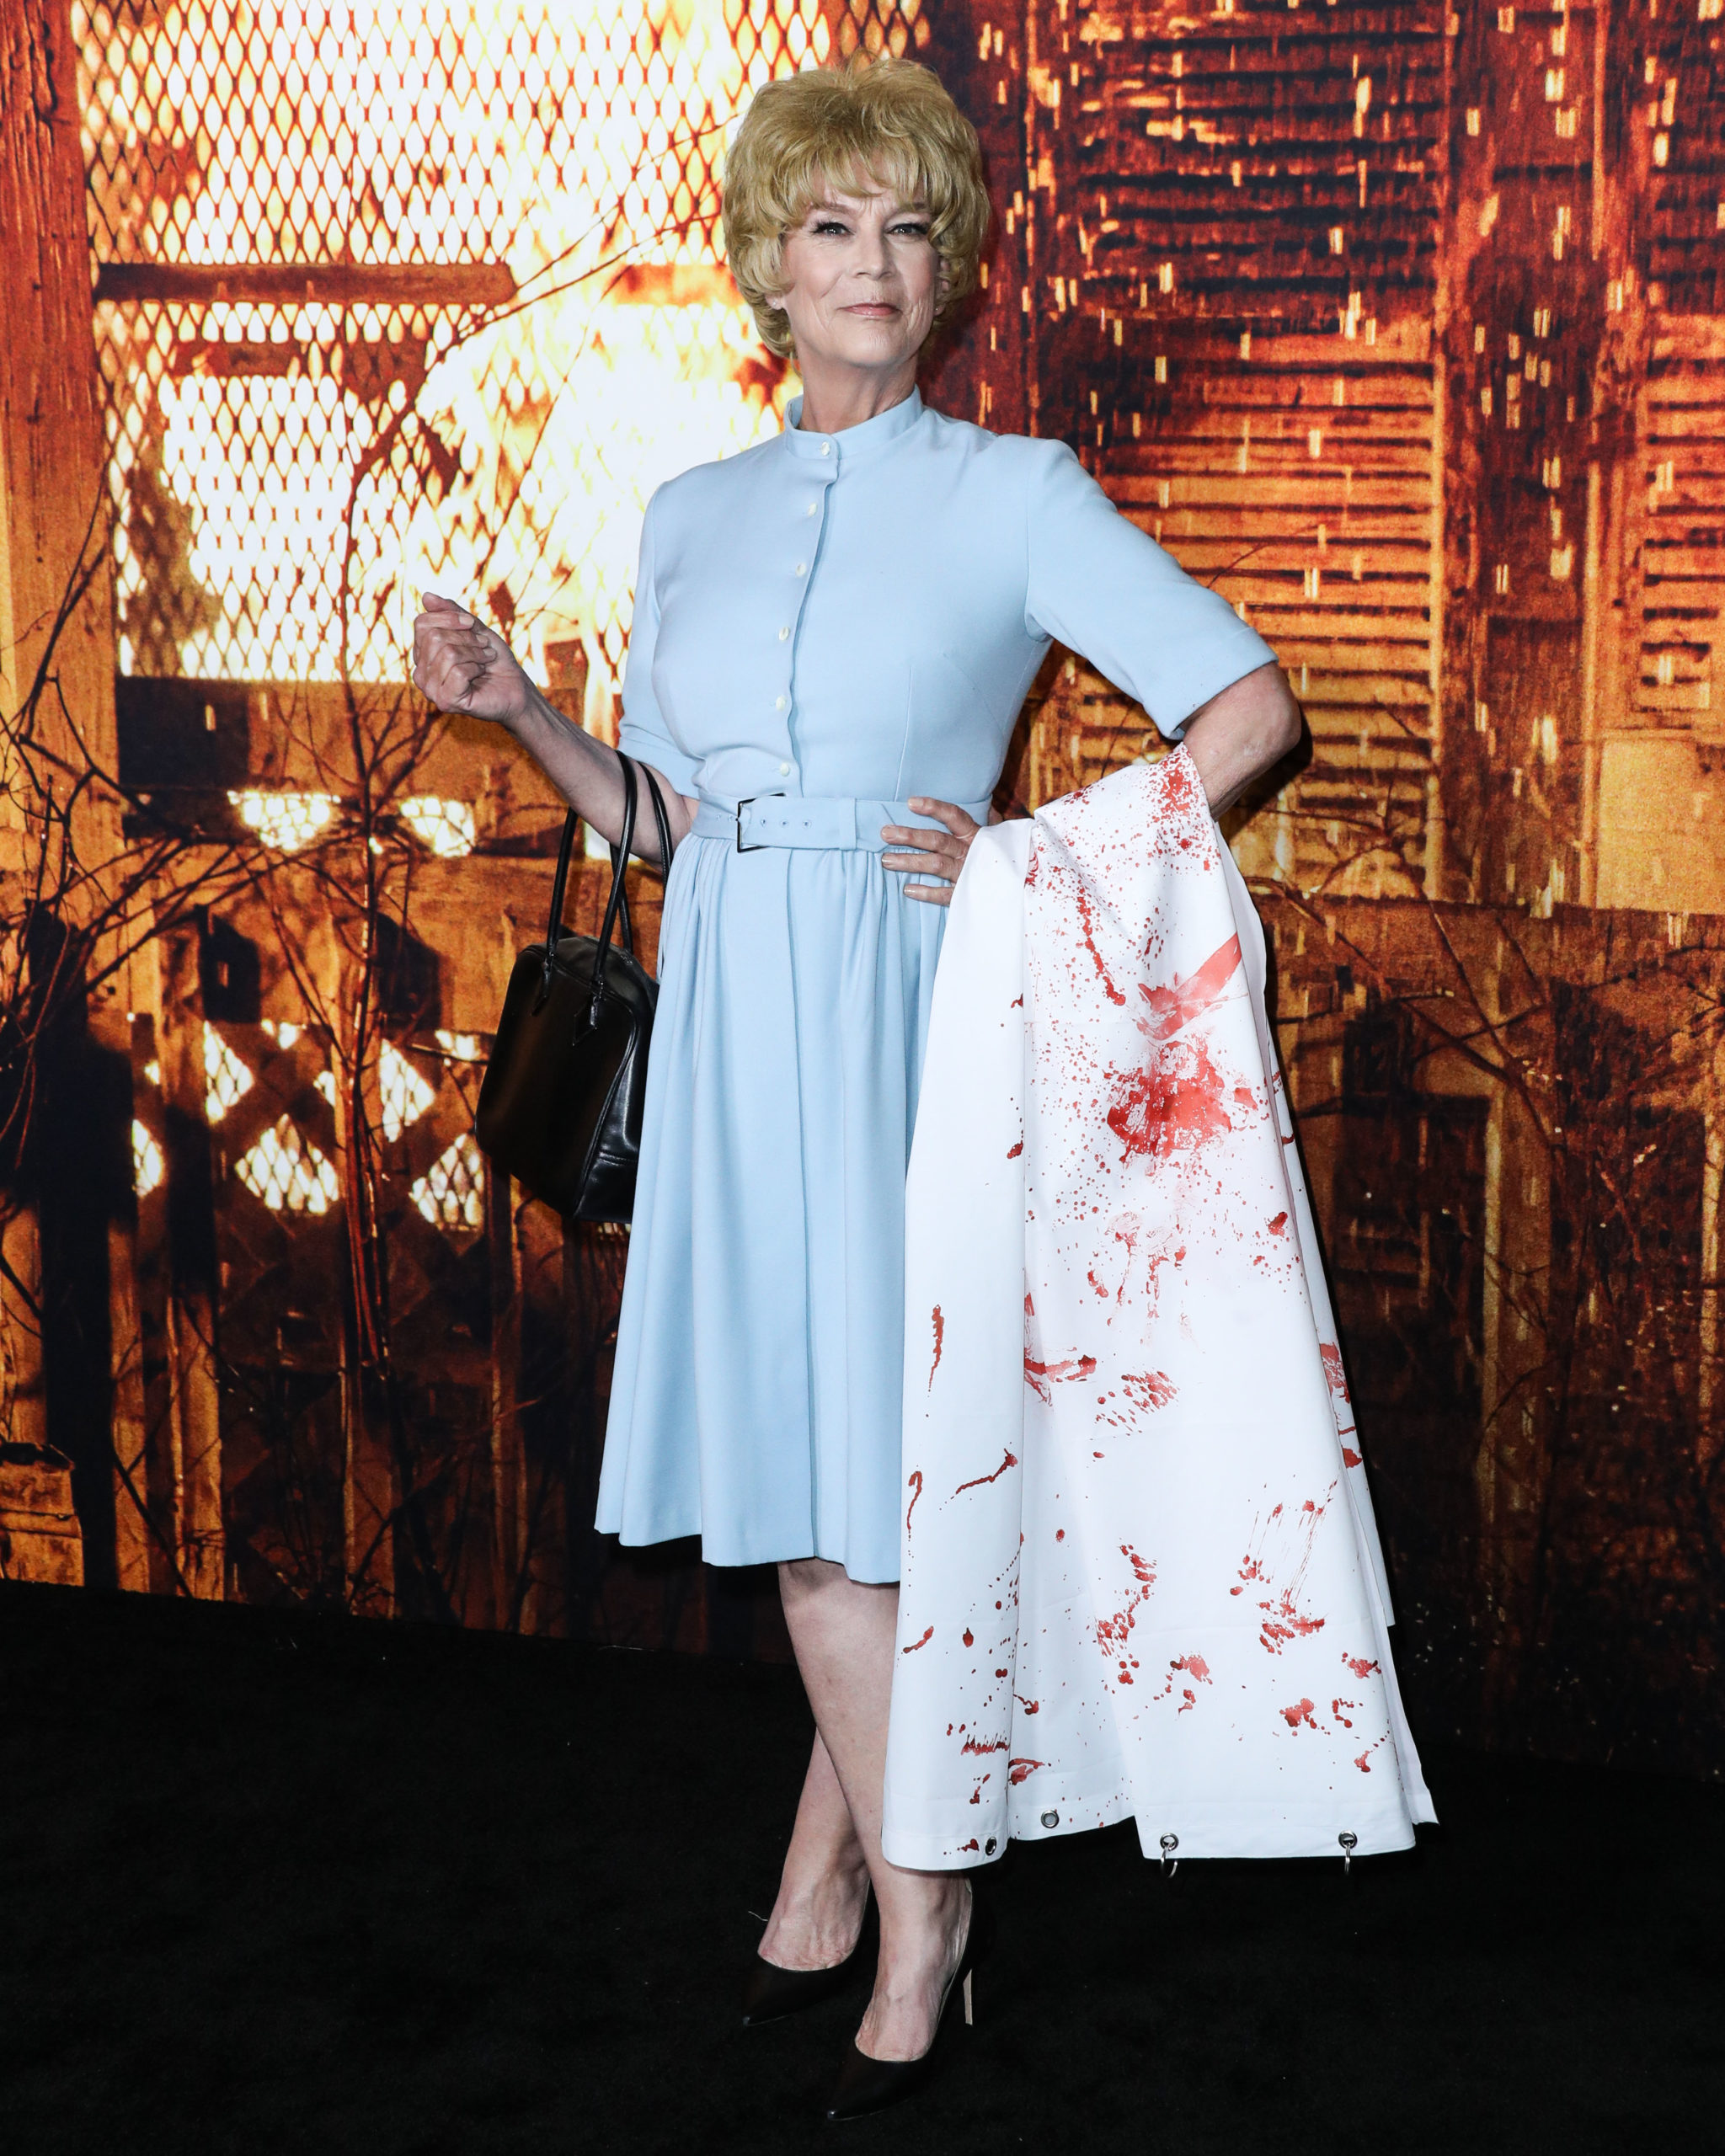 Jamie Lee Curtis Redecorns Mom's Iconic Psycho Look For Halloween Kills Premiere - Must See!